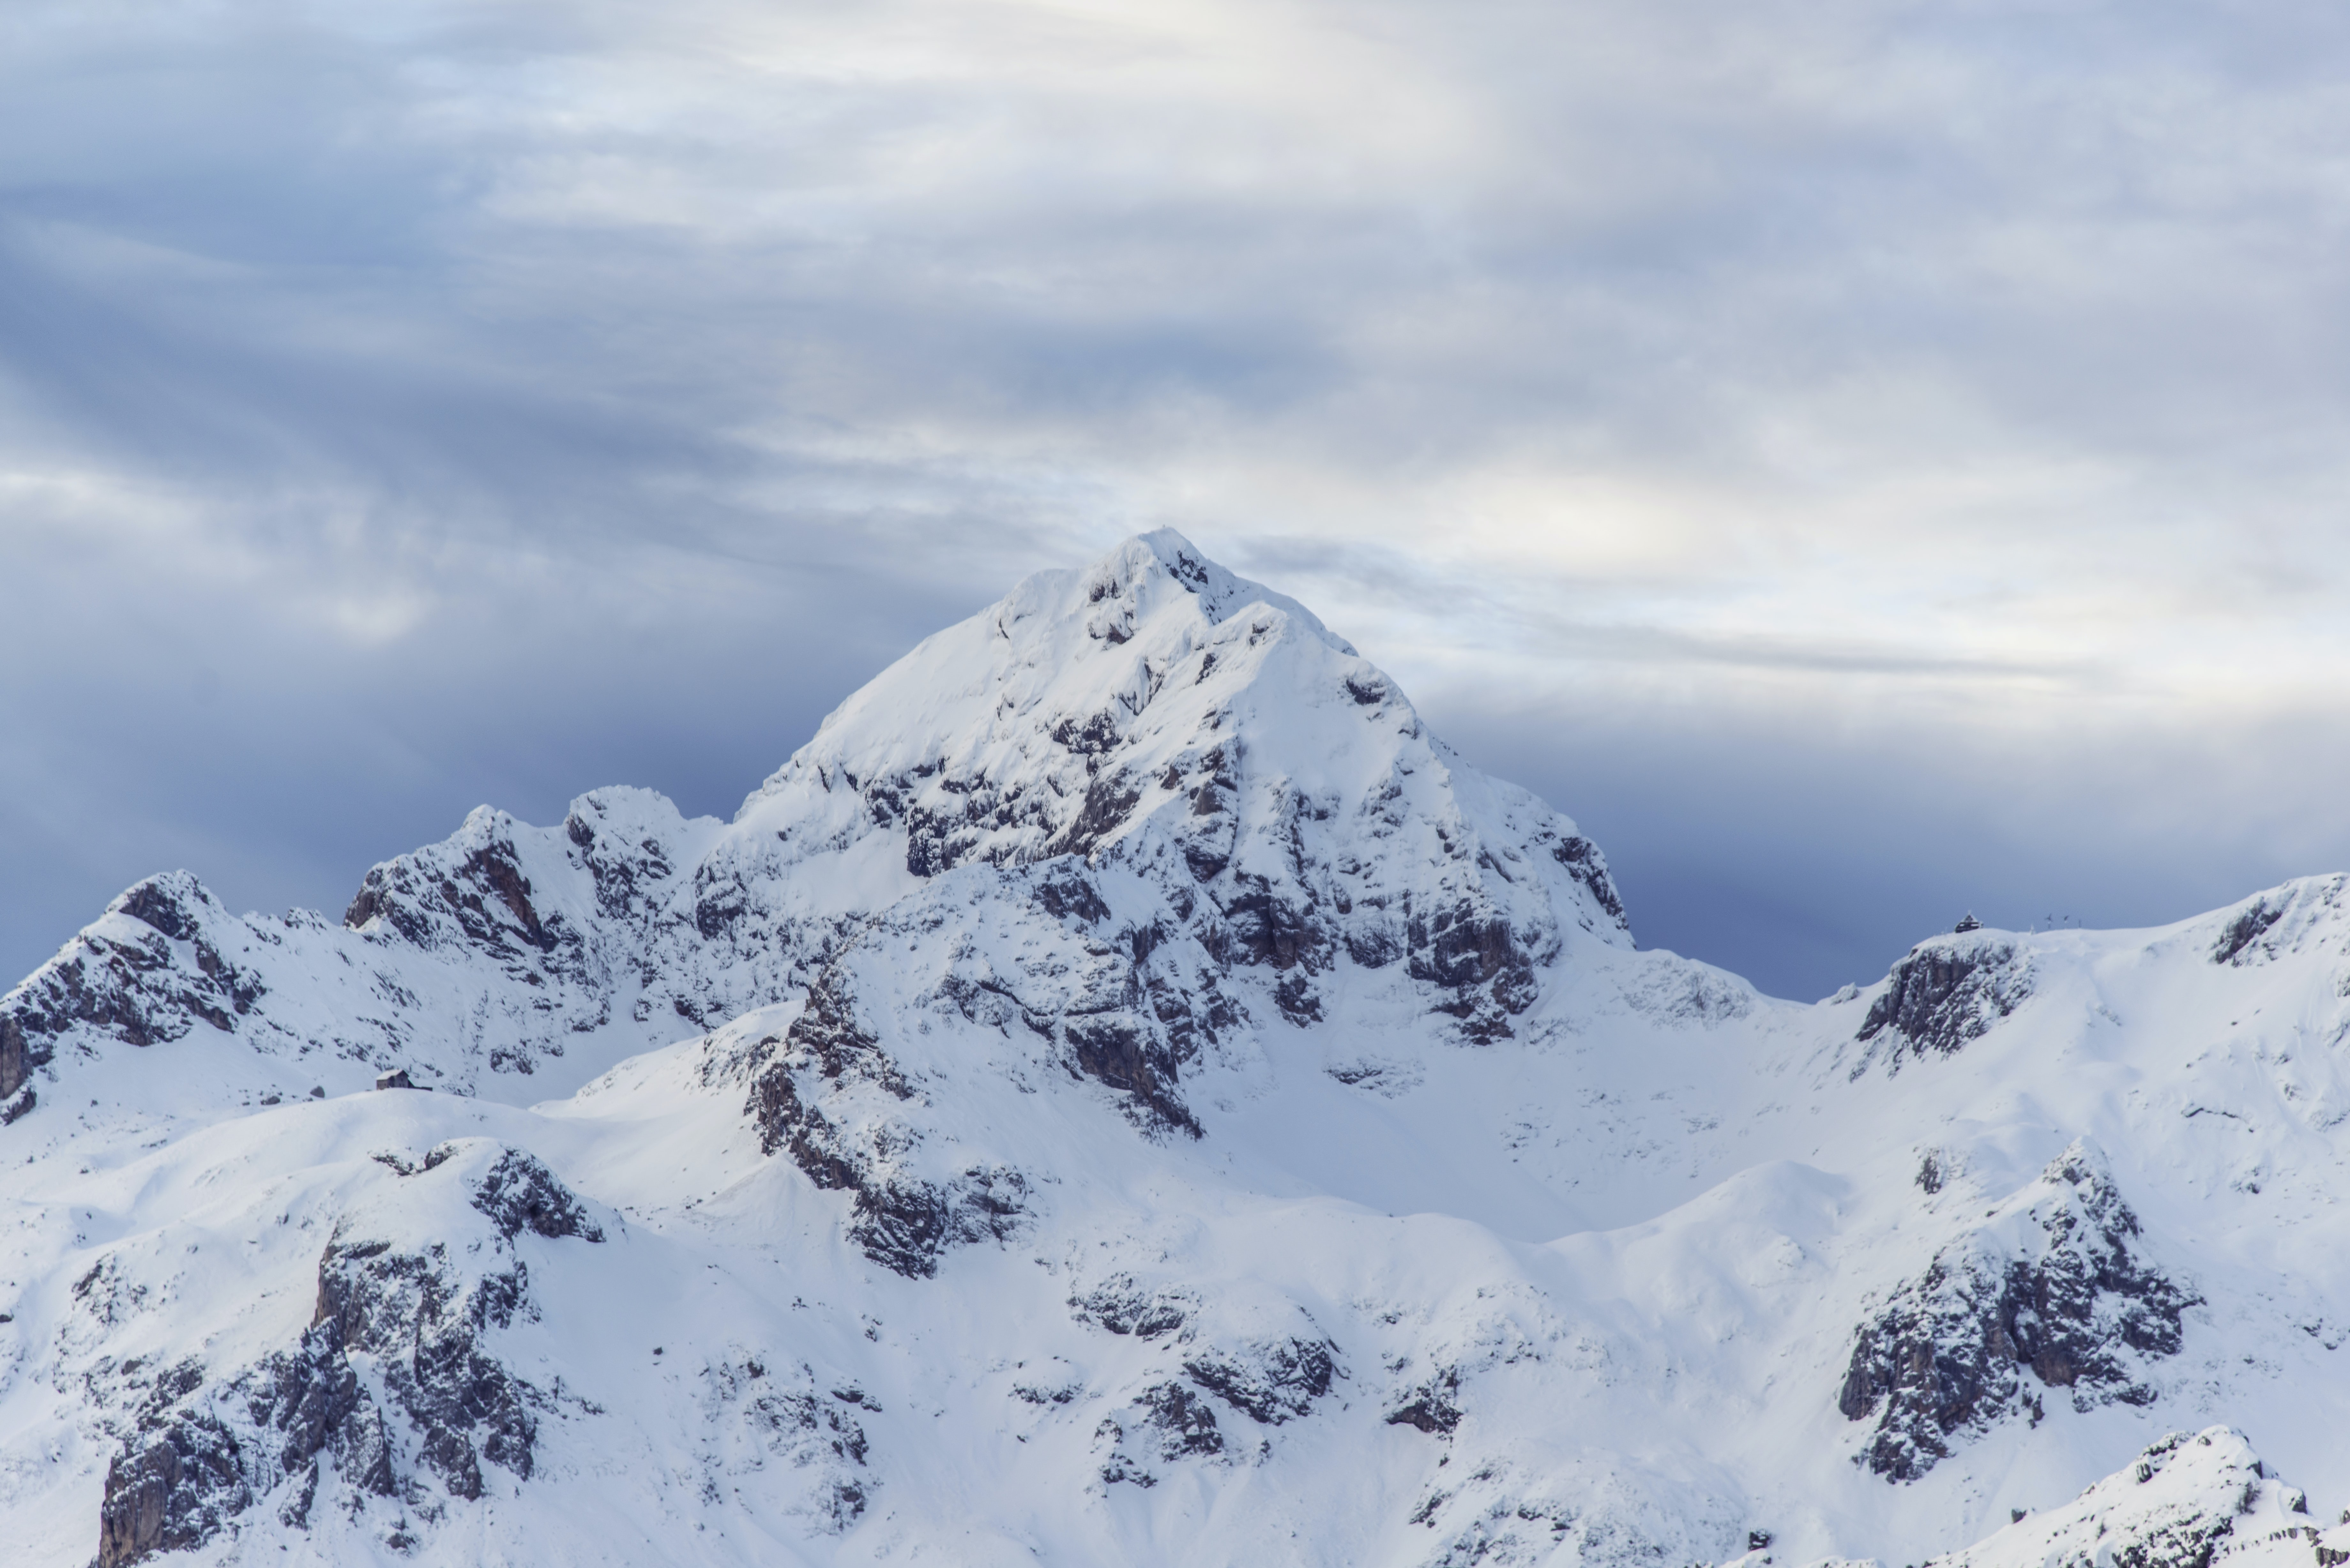 A rugged snow-capped mountain summit against an overcast sky